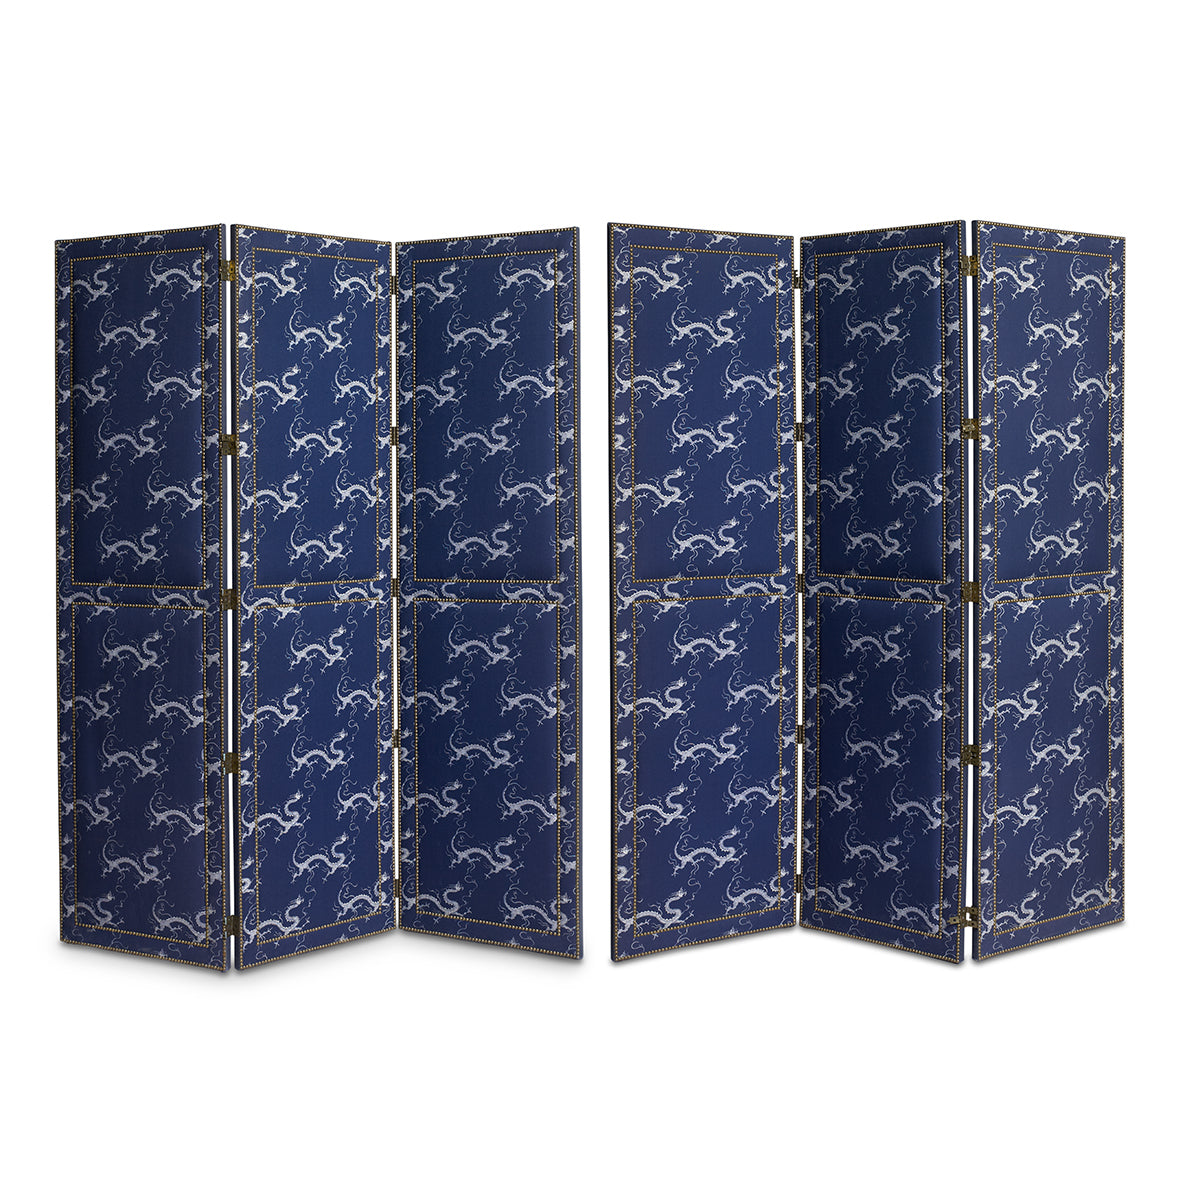 A pair of stylish brass-studded blue and white Chinoiserie dragon design upholstered screen, French 20th Century